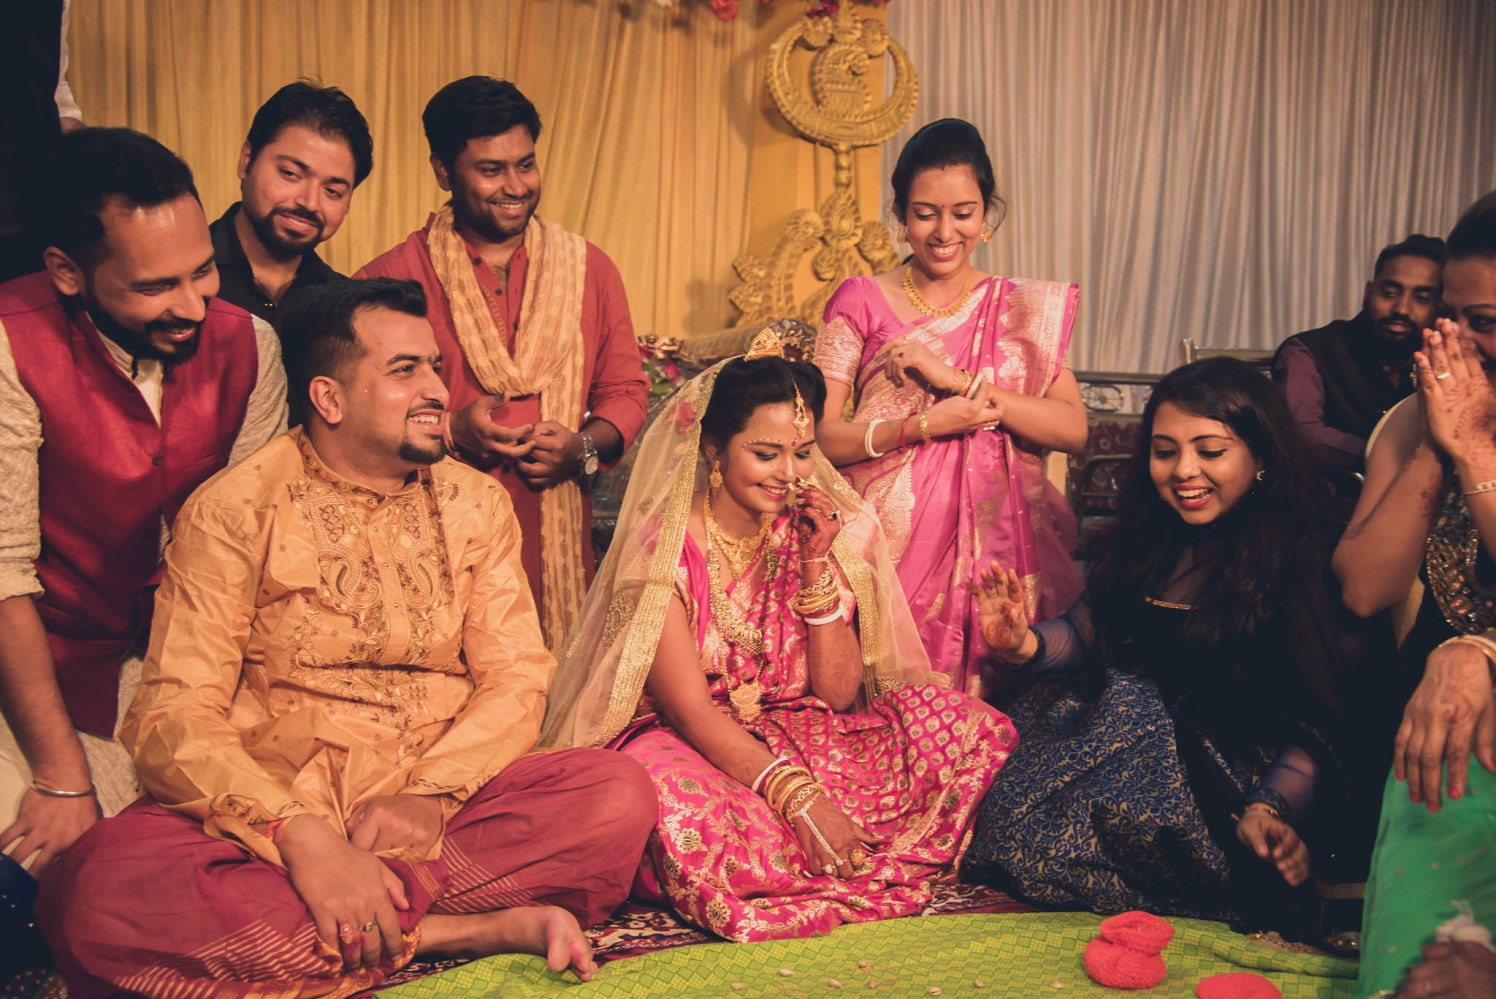 Onset of the jovial mood! by Patrick Joseph Wedding-photography | Weddings Photos & Ideas